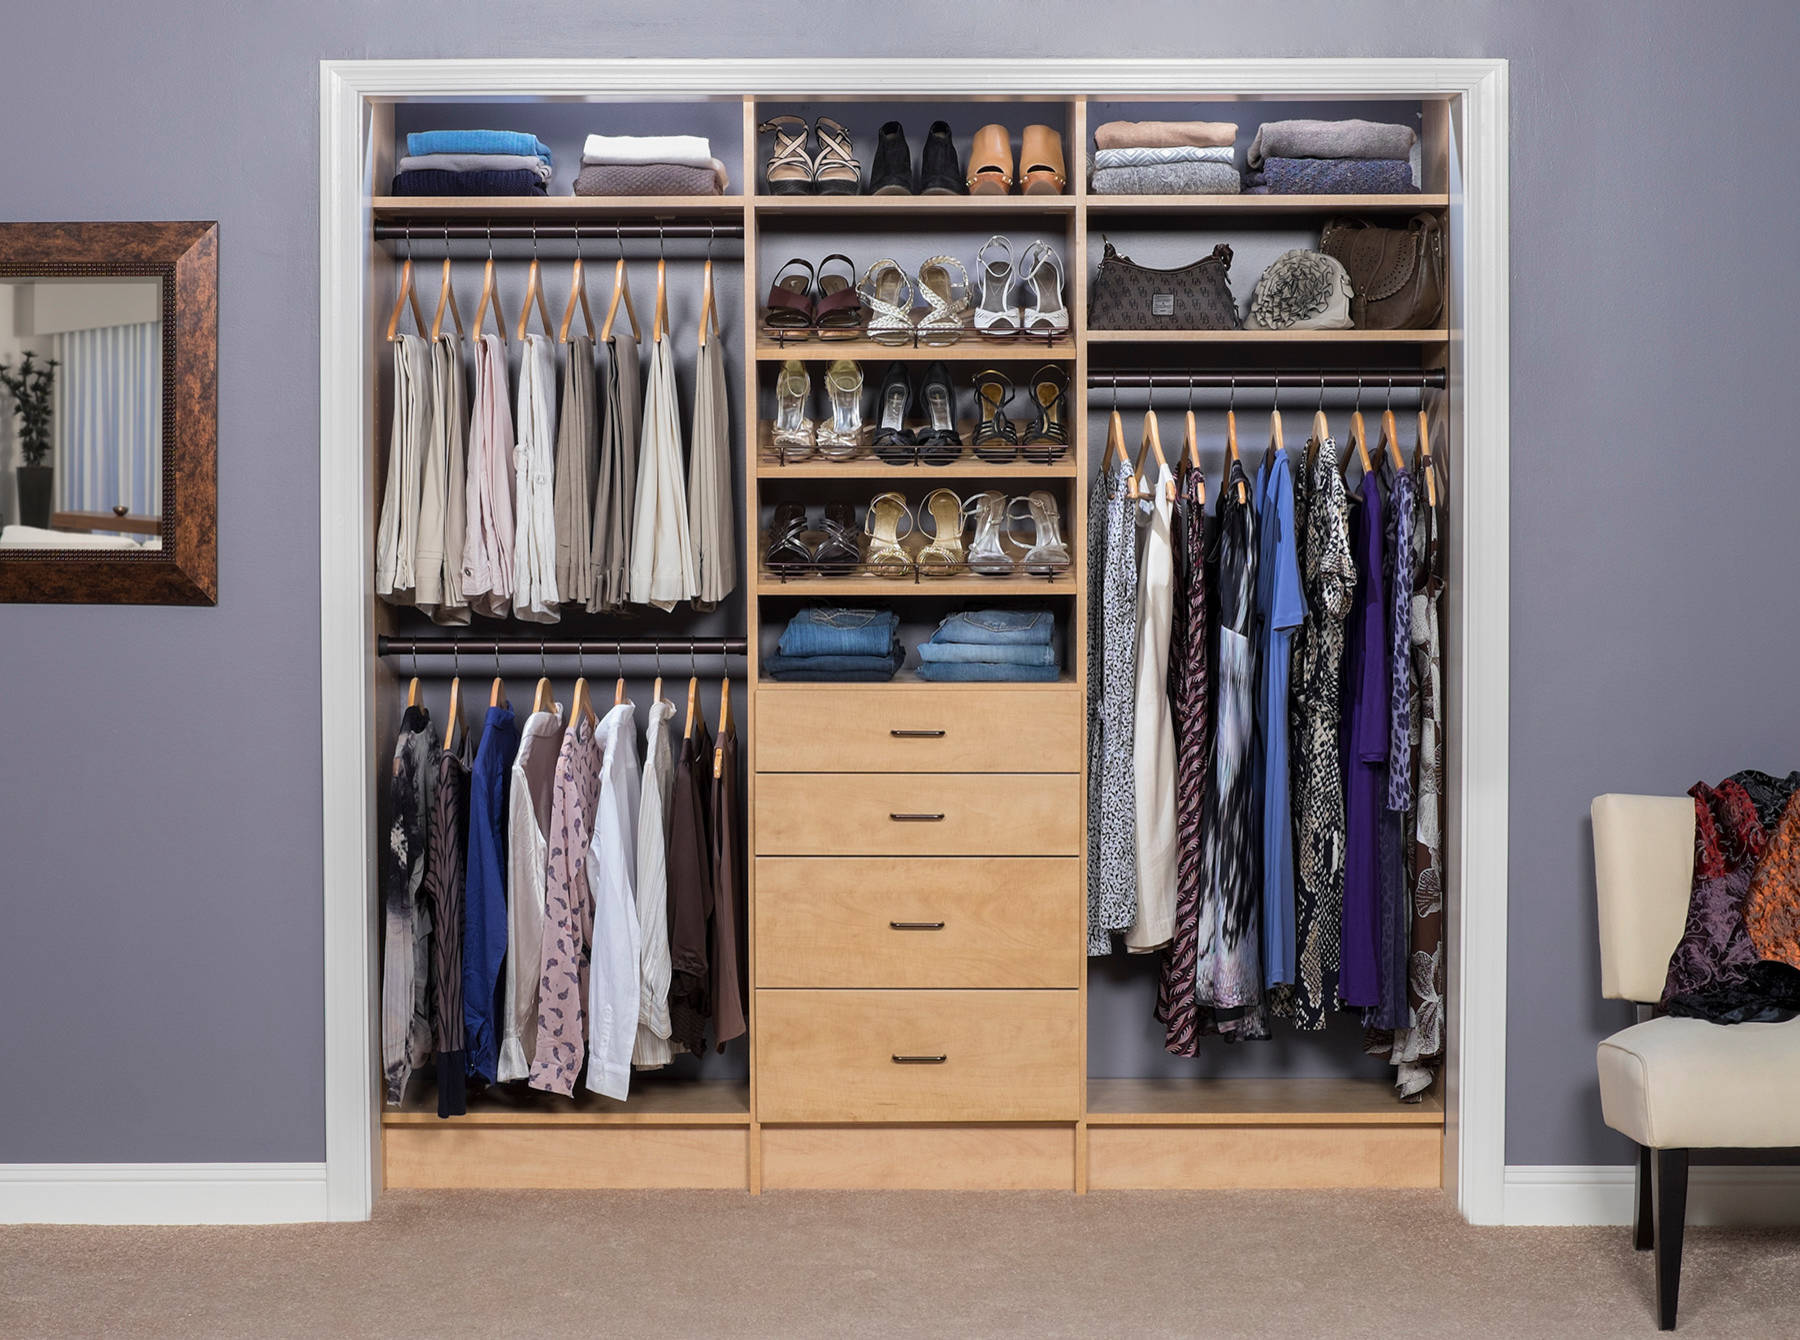 75 Beautiful Reach In Closet Pictures Ideas March 2021 Houzz